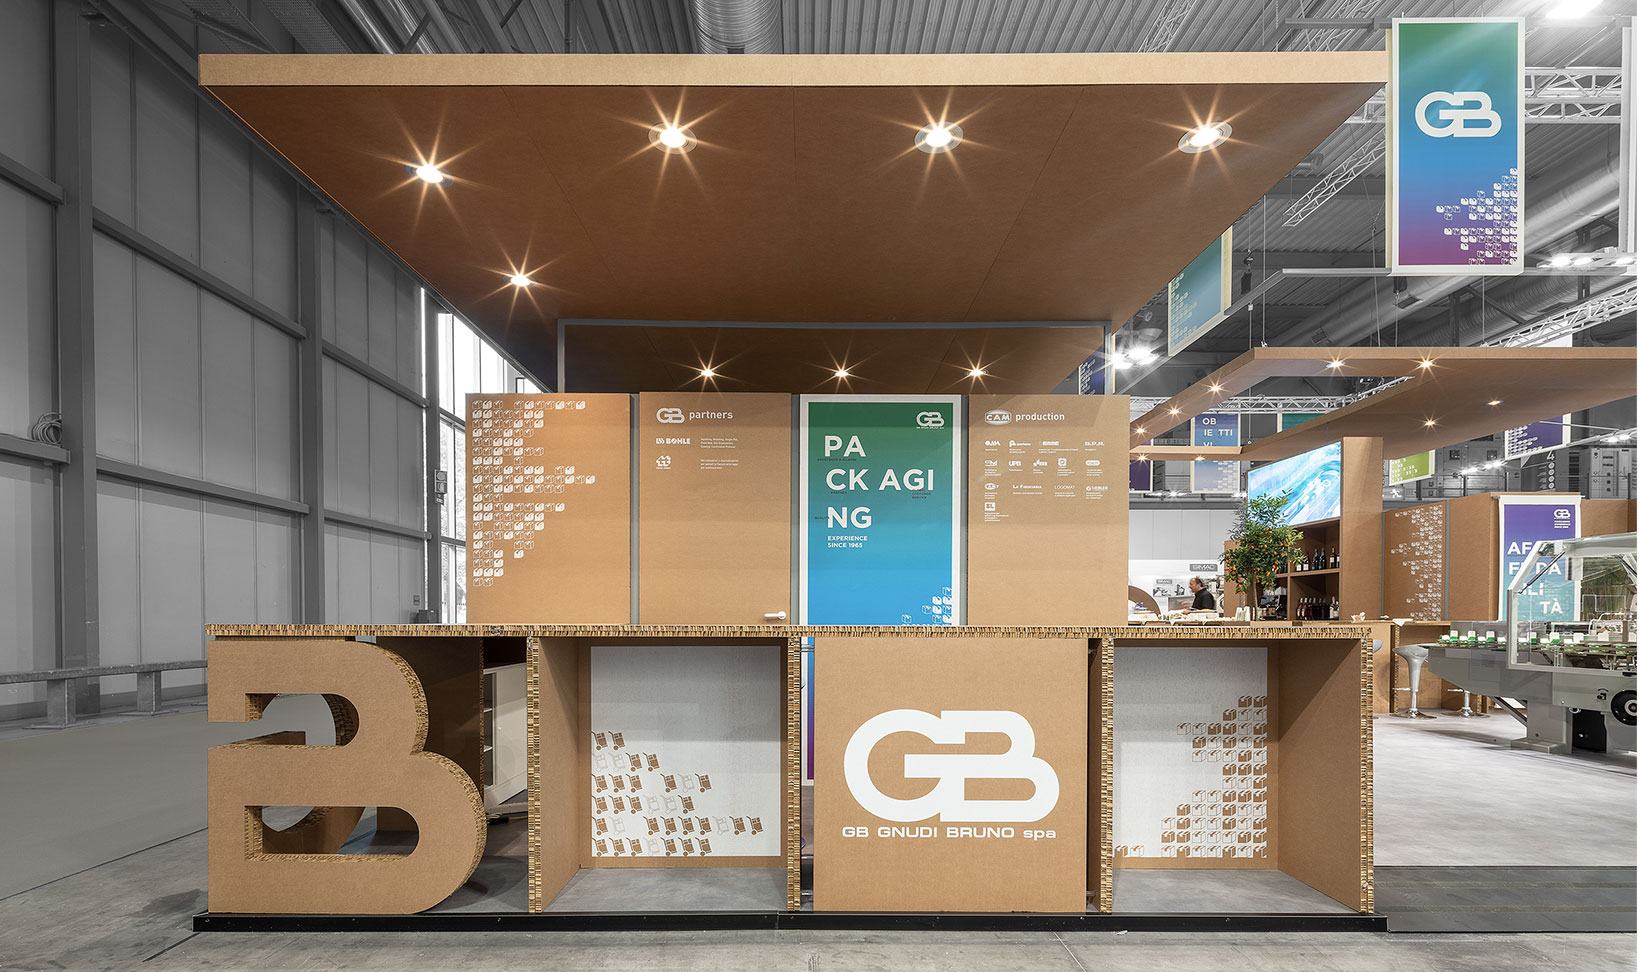 SEGB - gb exhibit pavilion. milan